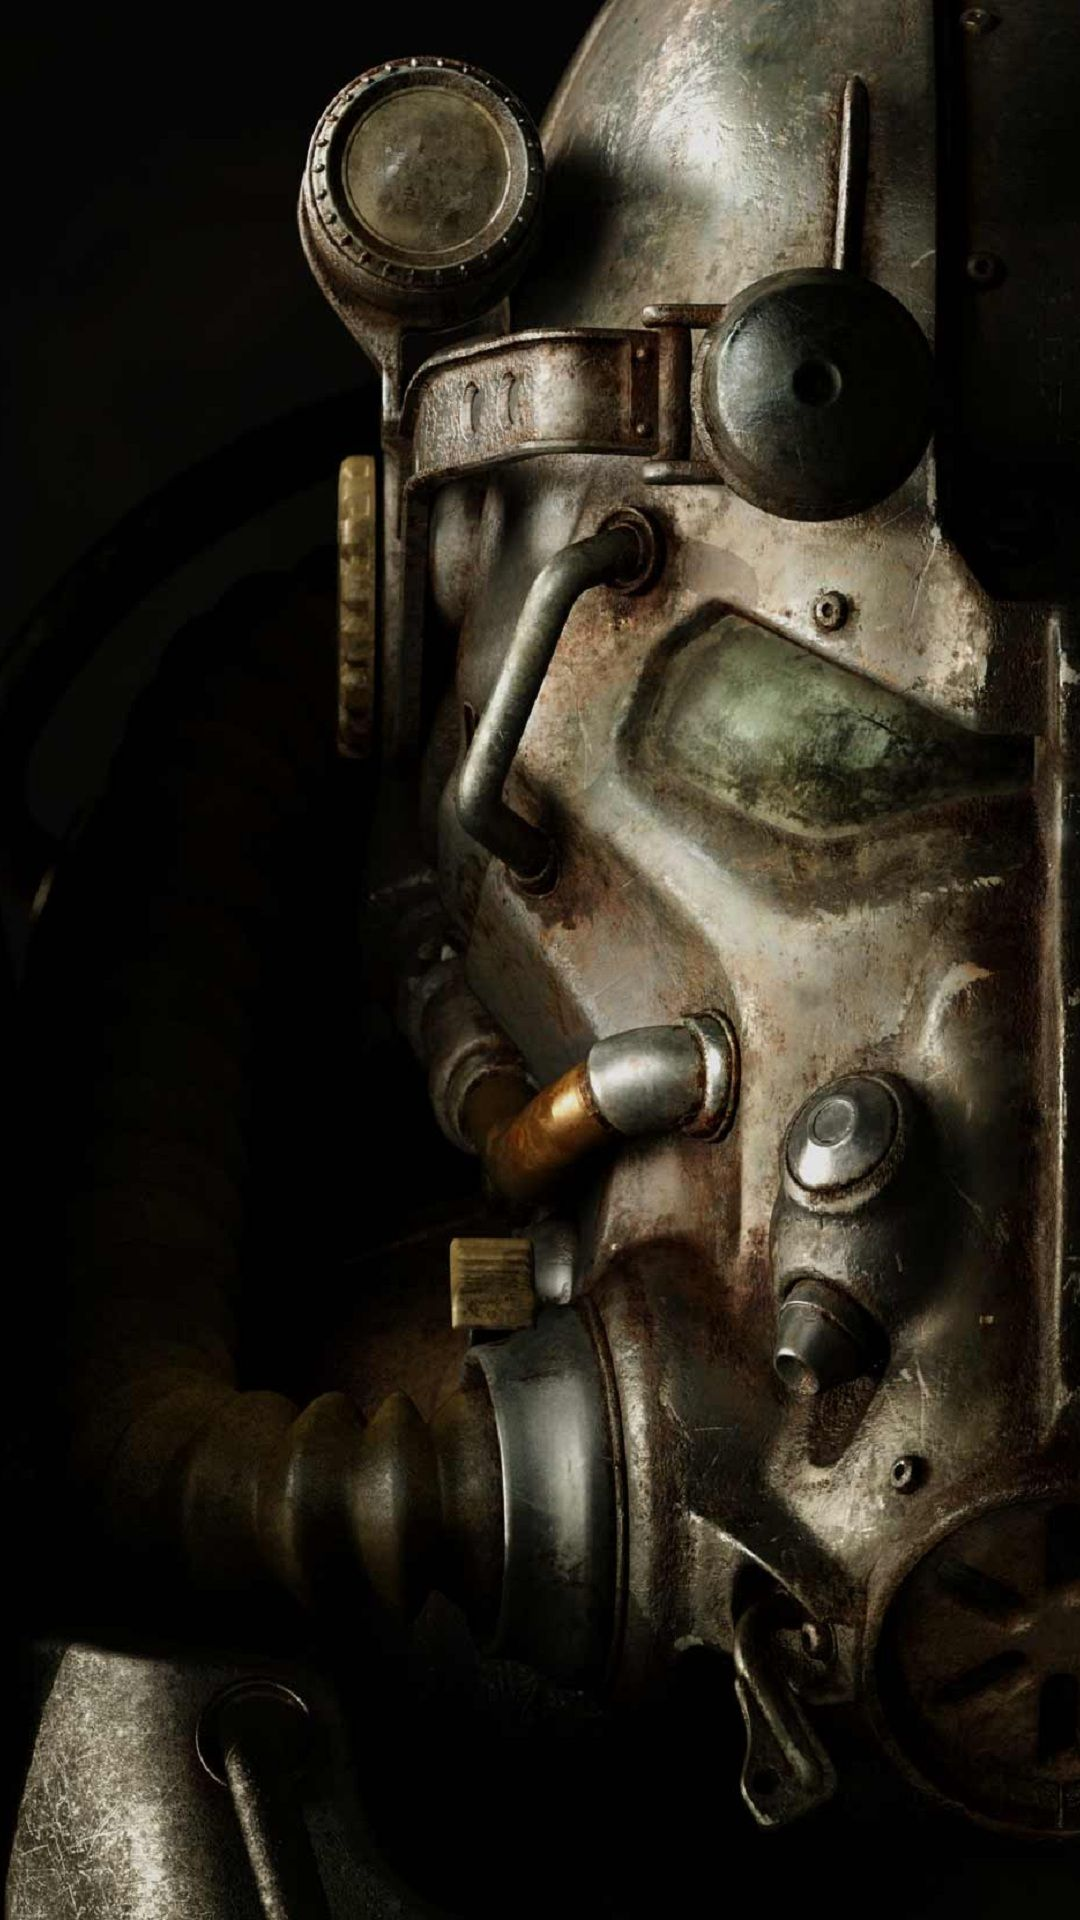 Fallout 4 1080x1920 Mobile Wallpapers - Album on Imgur